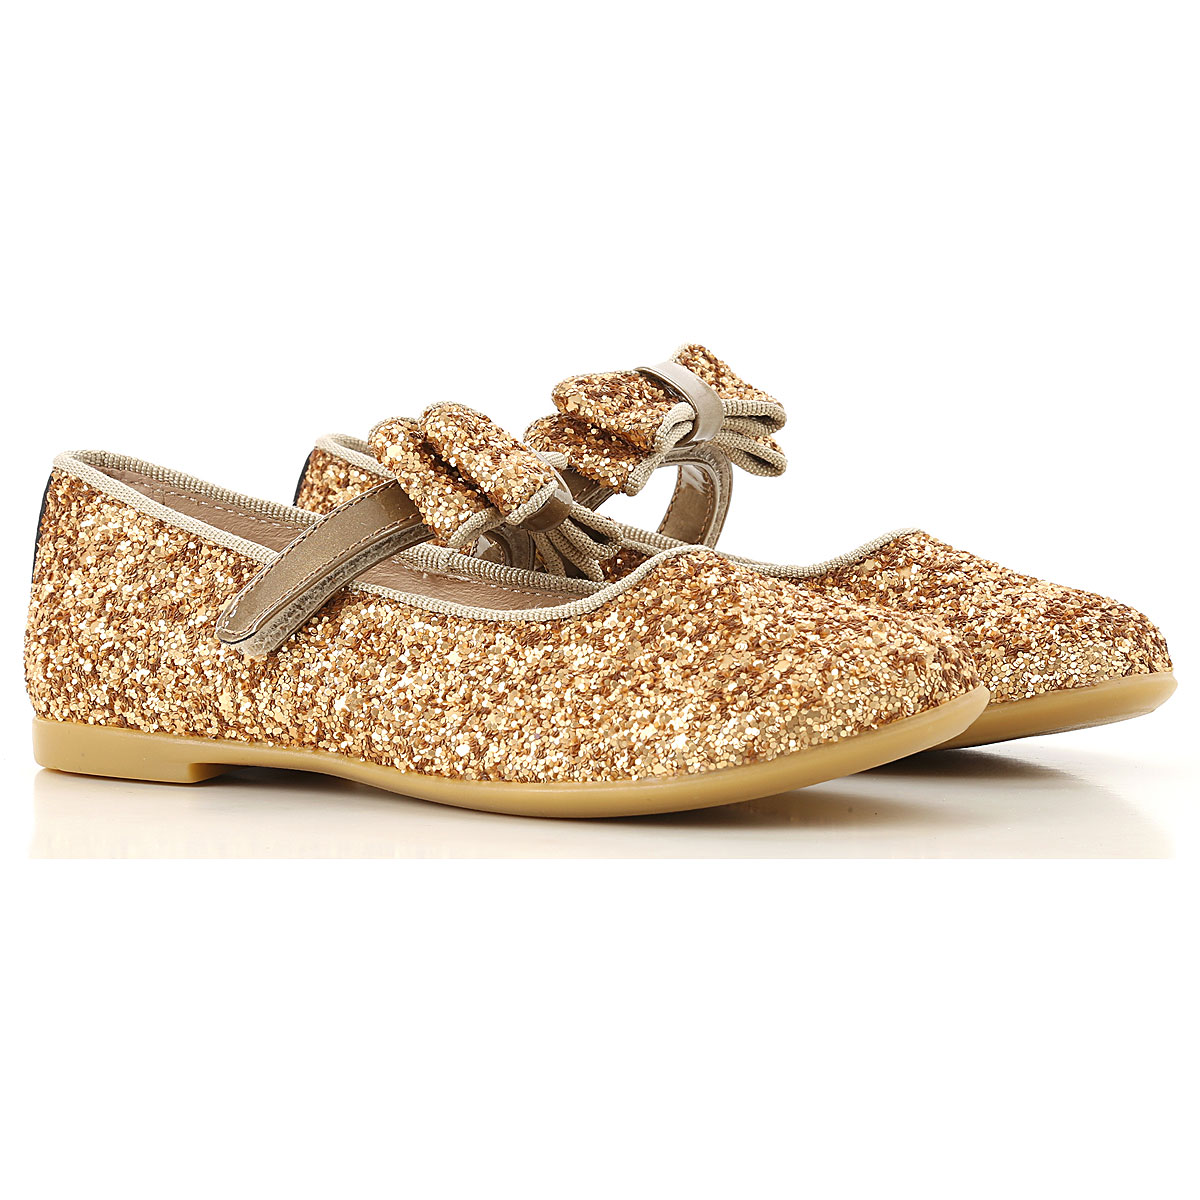 Image of Florens Kids Shoes for Girls, Gold, polyurethane, 2017, 20 21 22 23 24 25 26 27 28 29